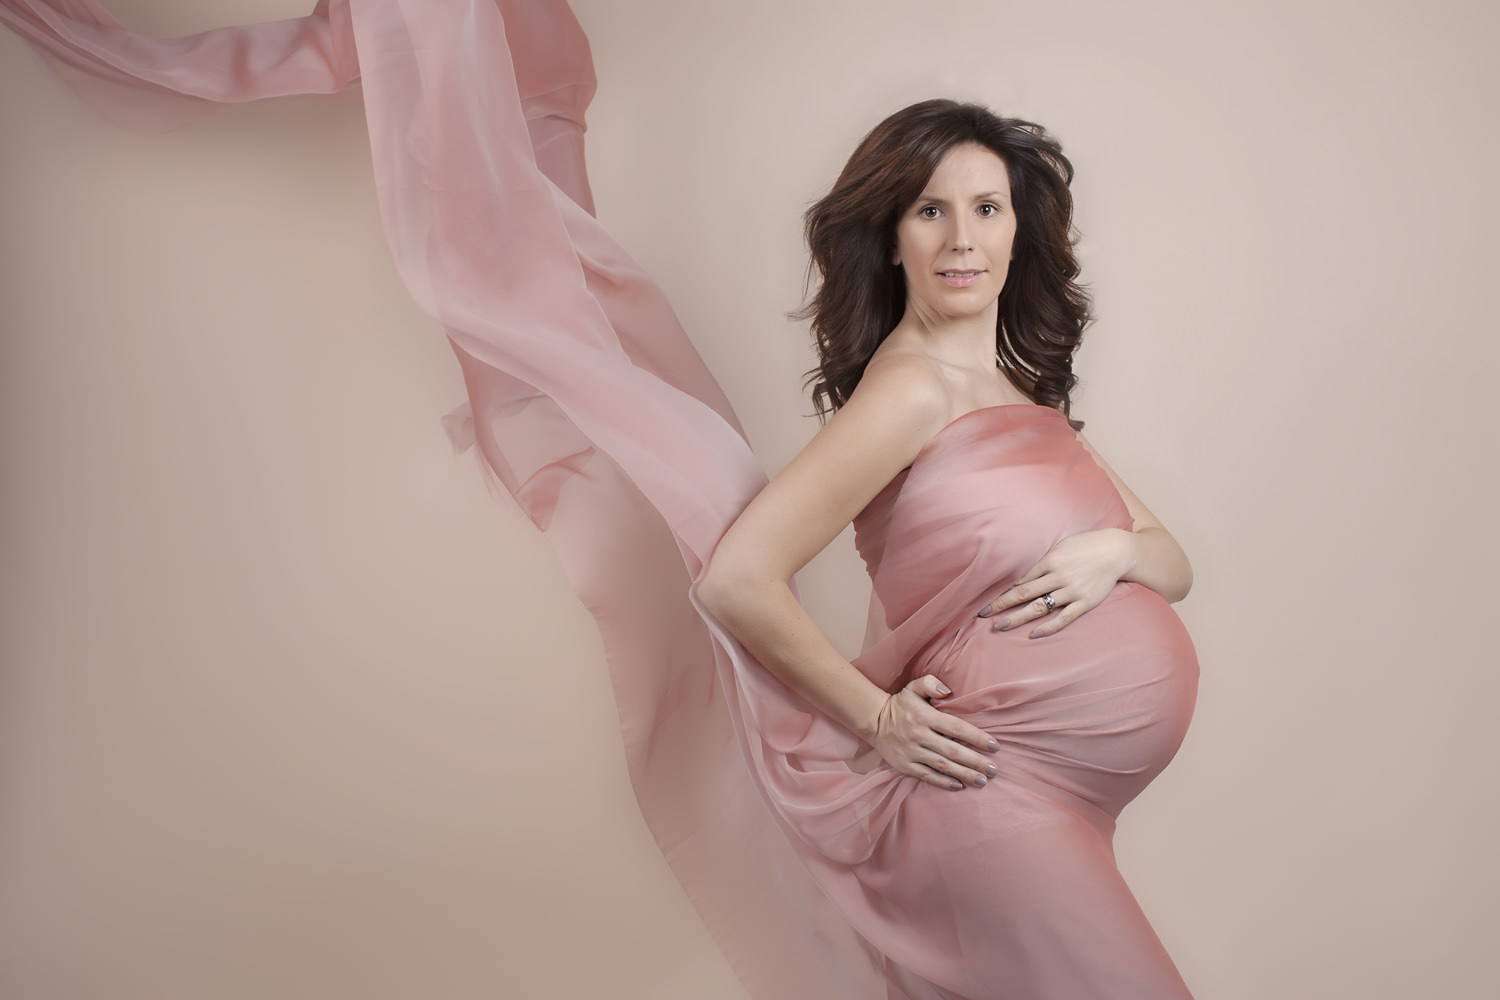 Maternity photographer in Wiltshire and the South West.